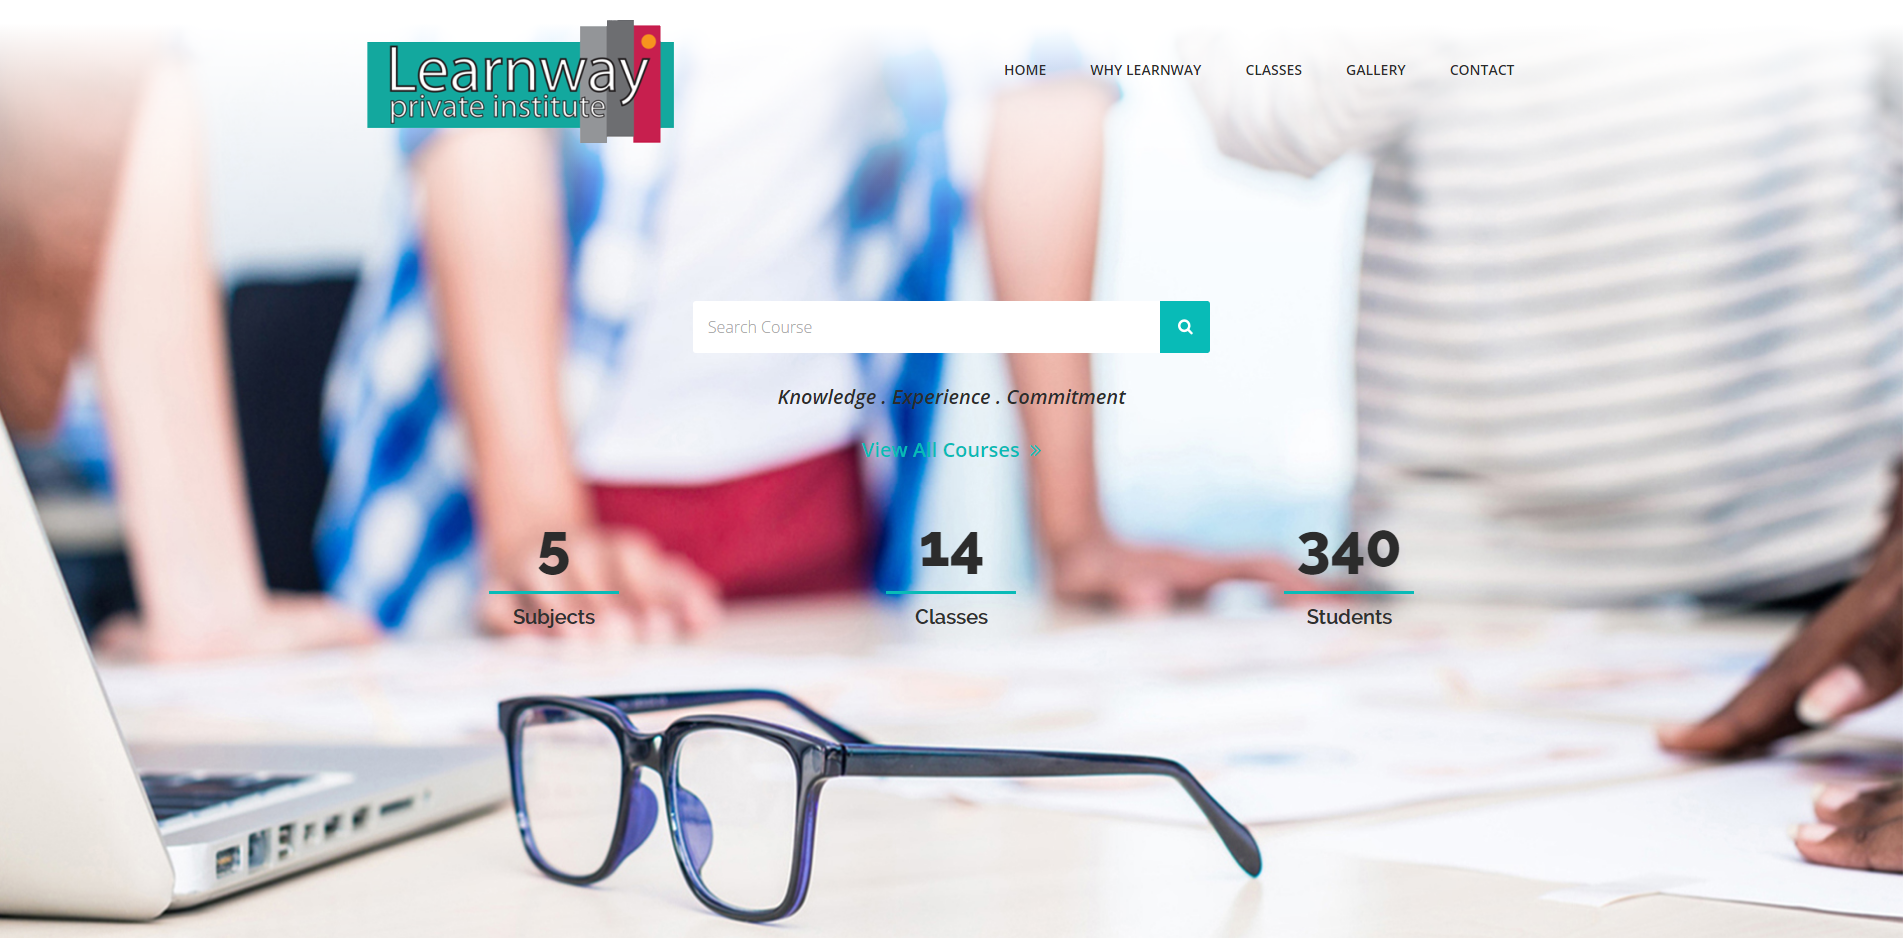 iCreate Web Design | Website Re-Design | Trifold Brochure | The Learnway Private Institute